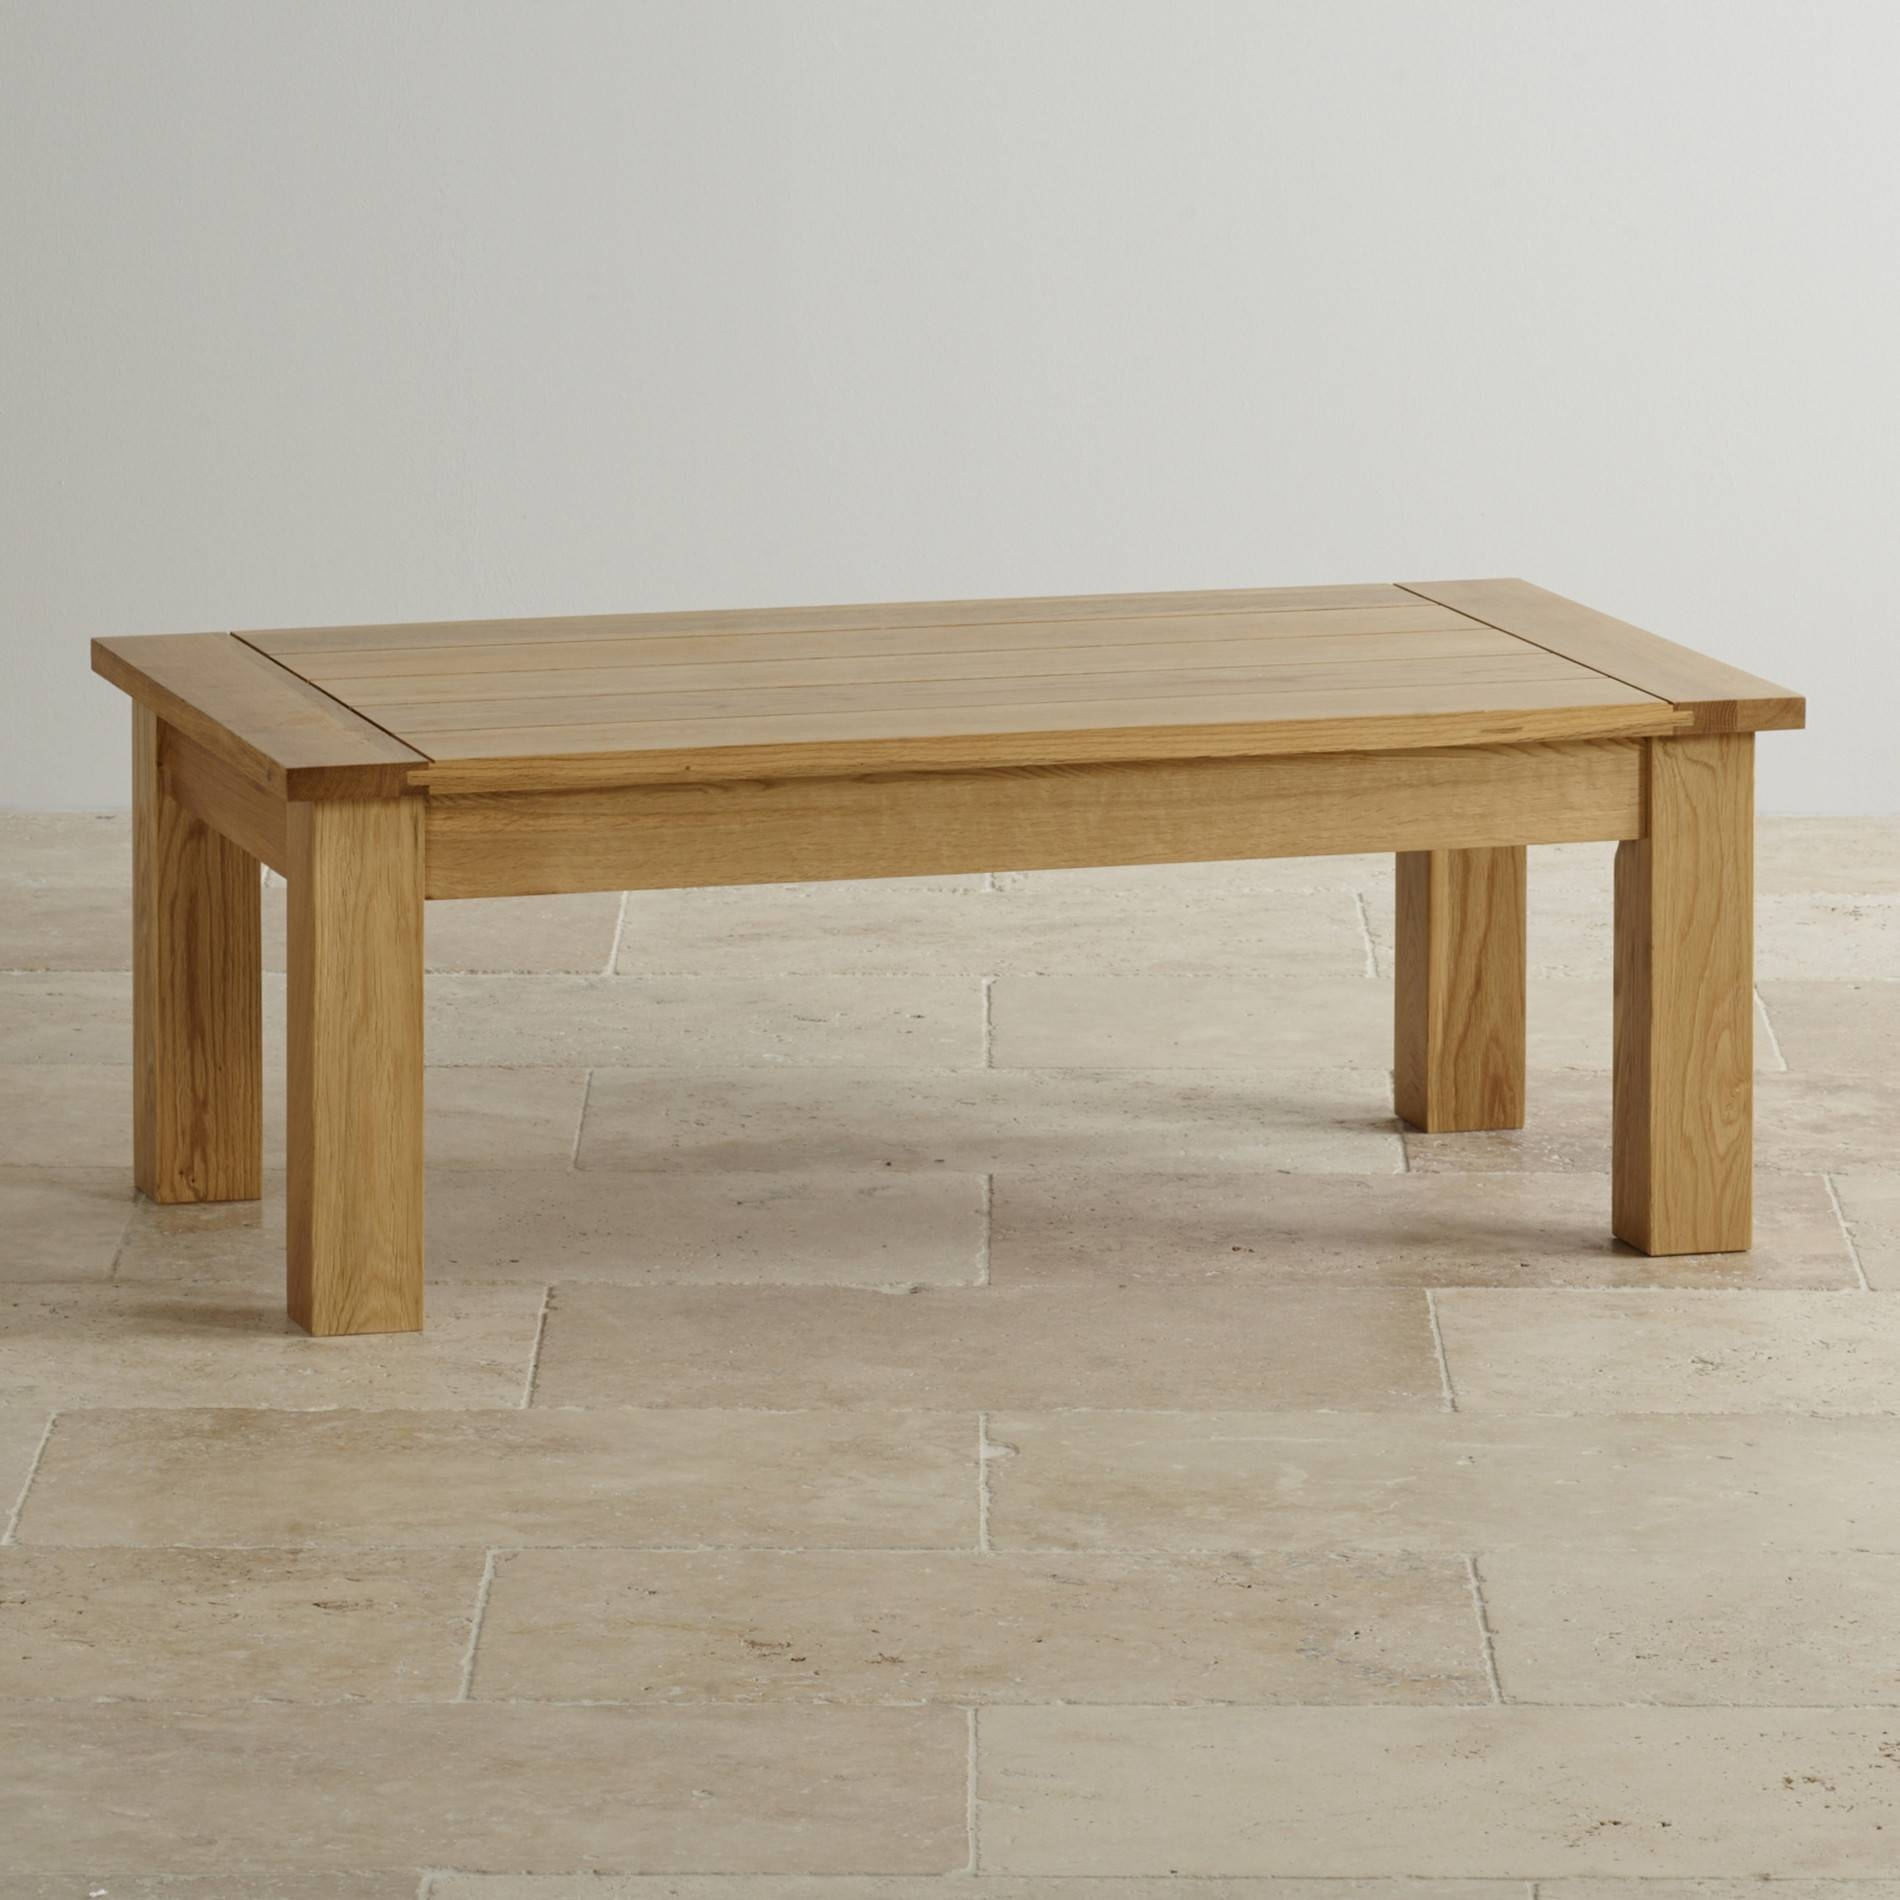 Solid Oak Coffee Table Popular As Square Coffee Table And Marble inside Square Oak Coffee Tables (Image 26 of 30)